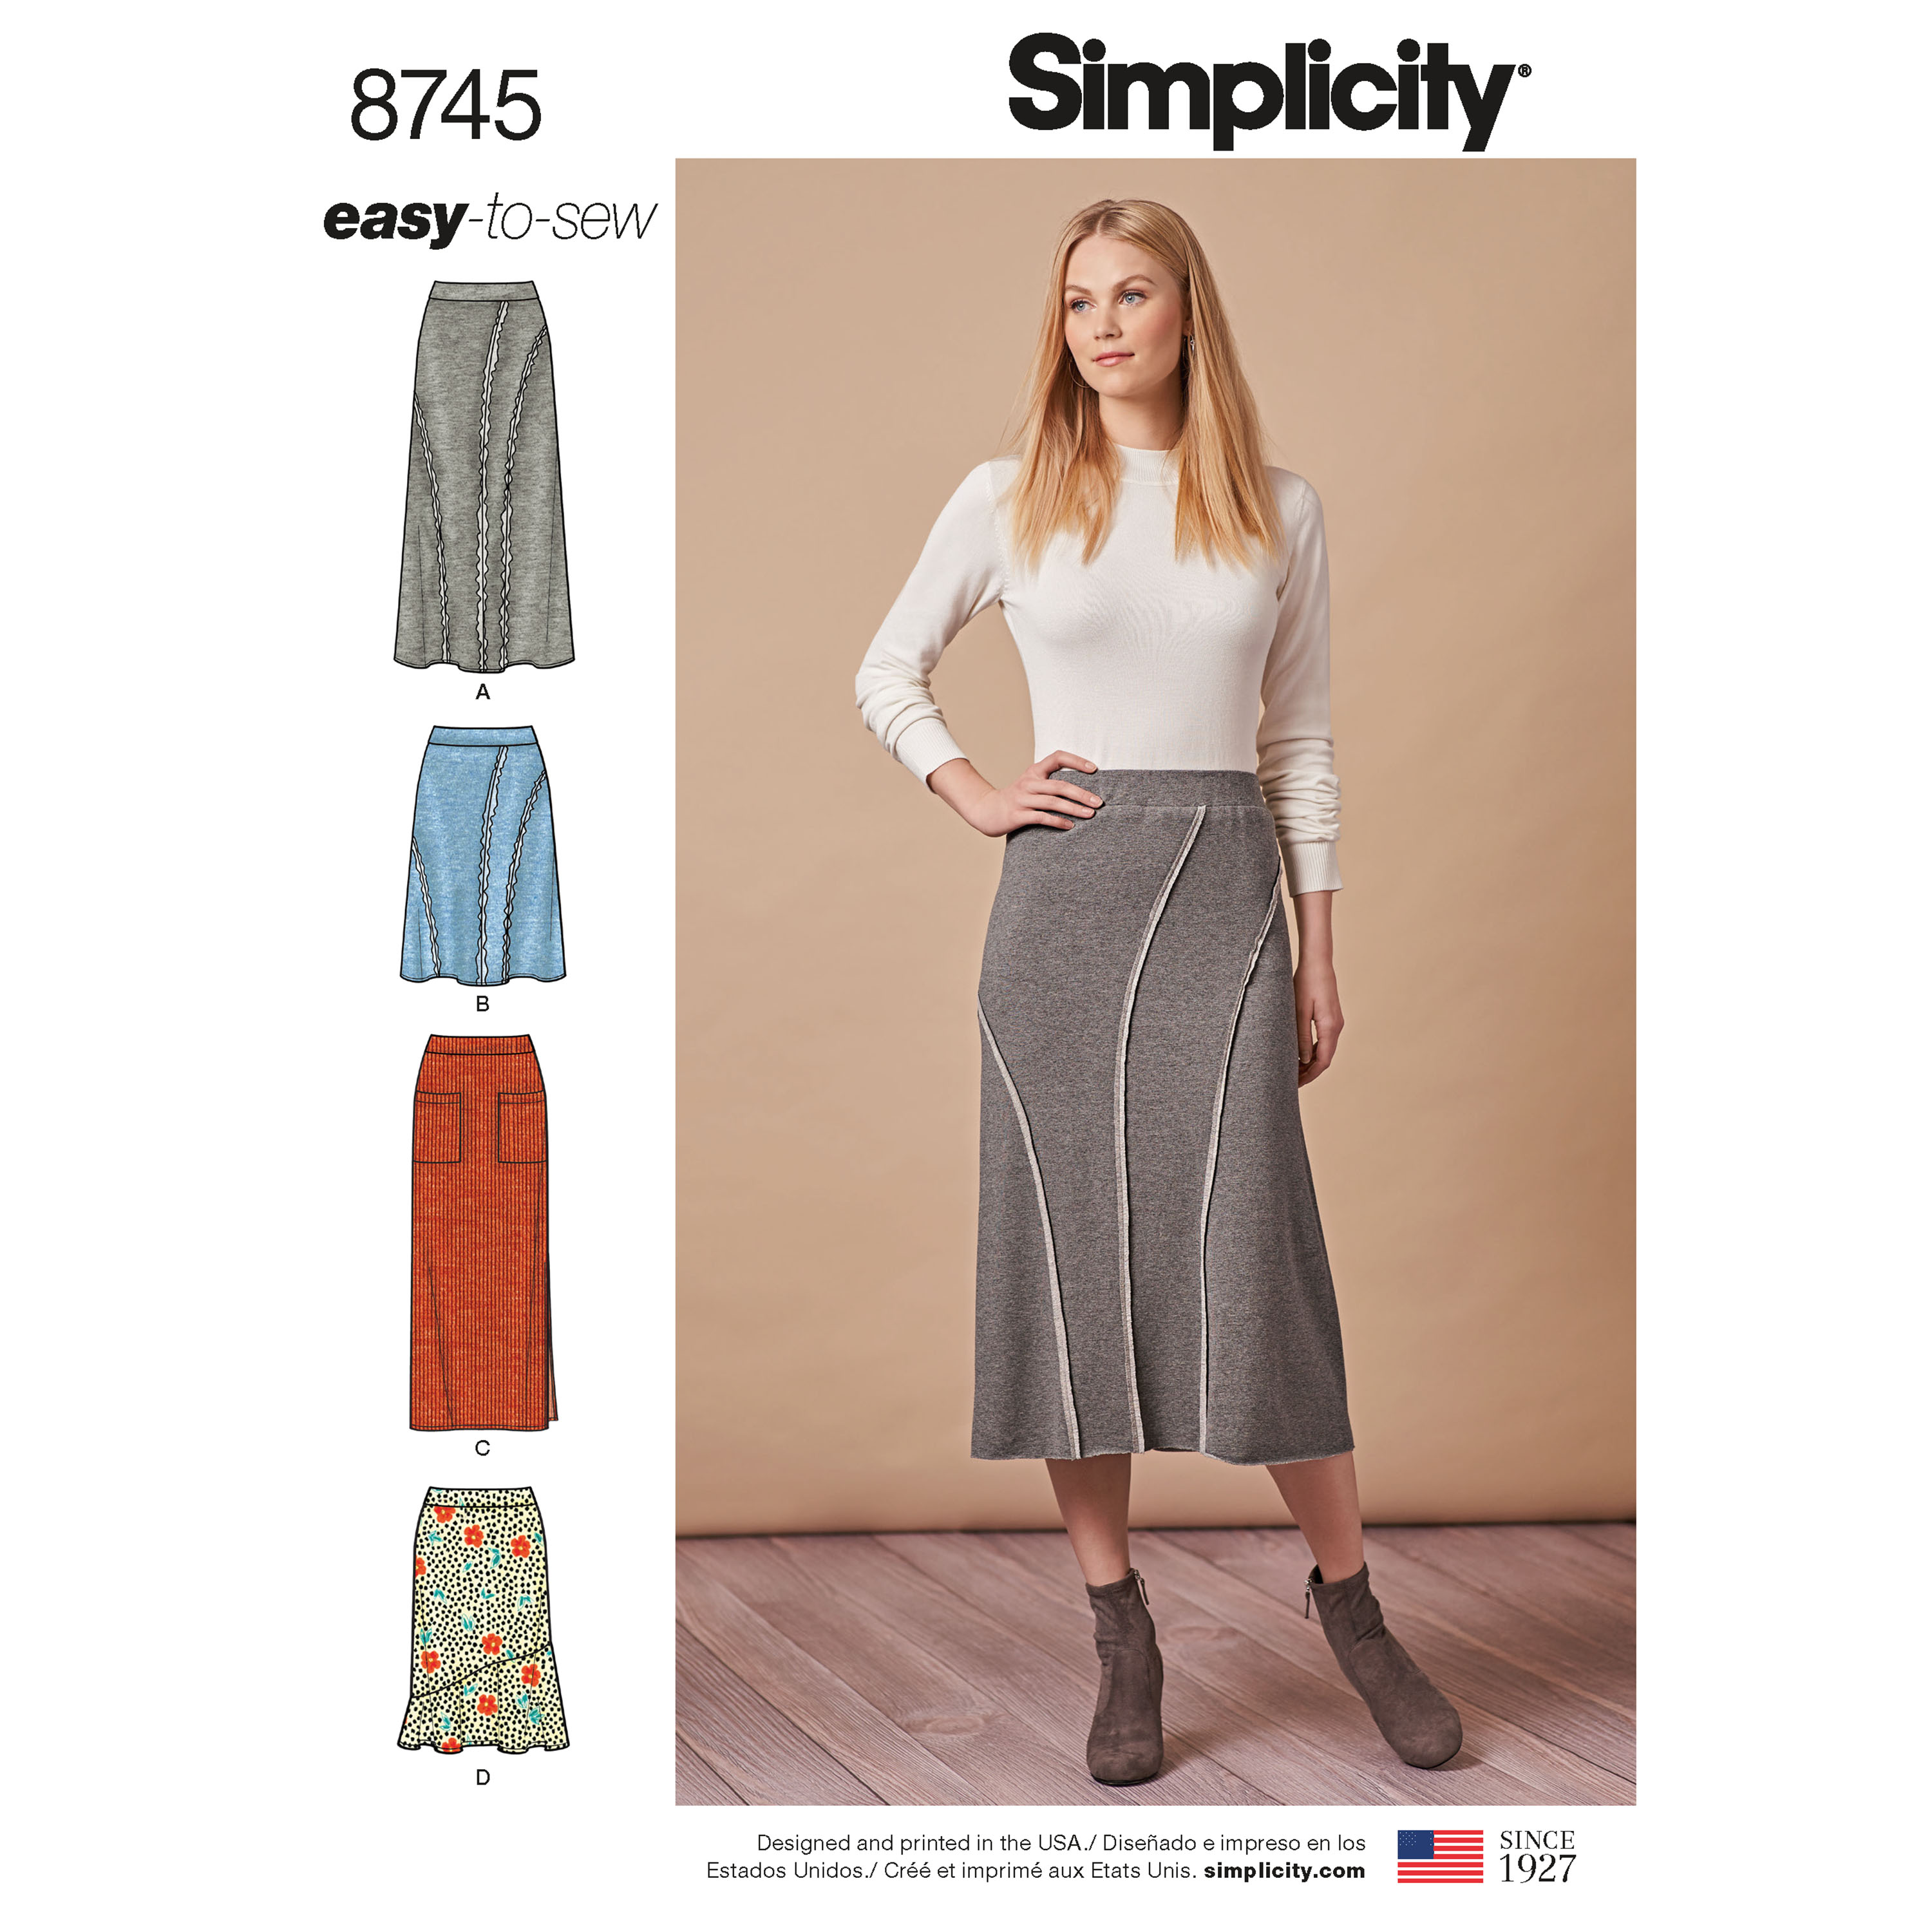 Simplicity 8745 Misses\' Easy-to-Sew Knit Skirts